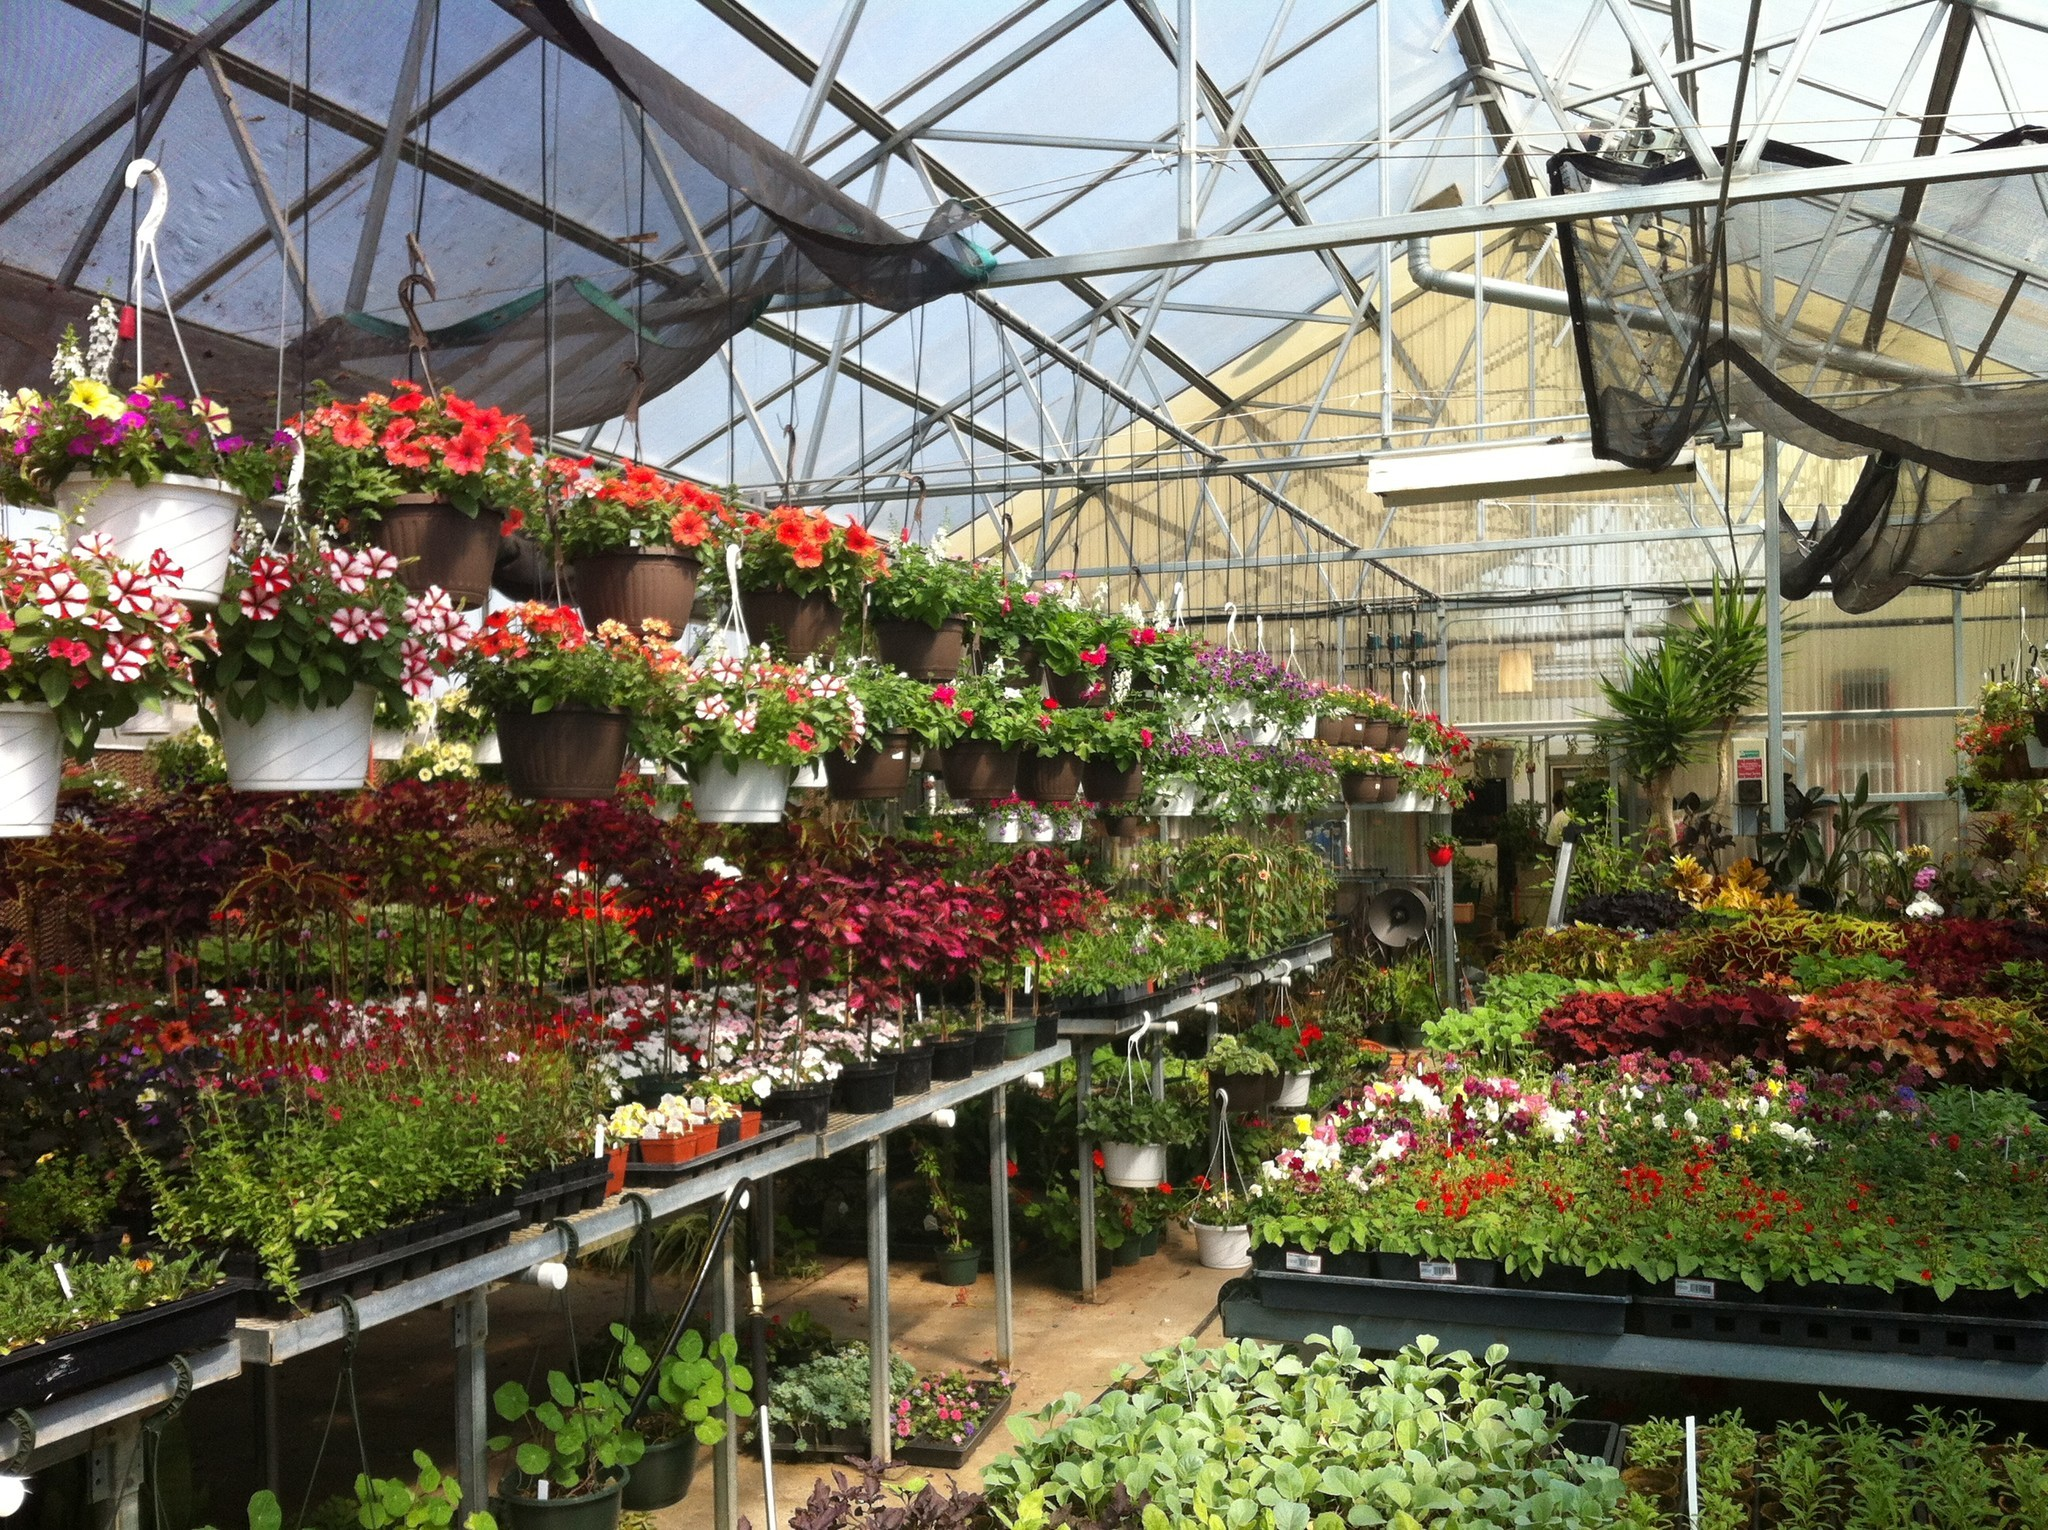 Allendale Greenhouse Sale May 11 and 12 - Lake County News-Sun